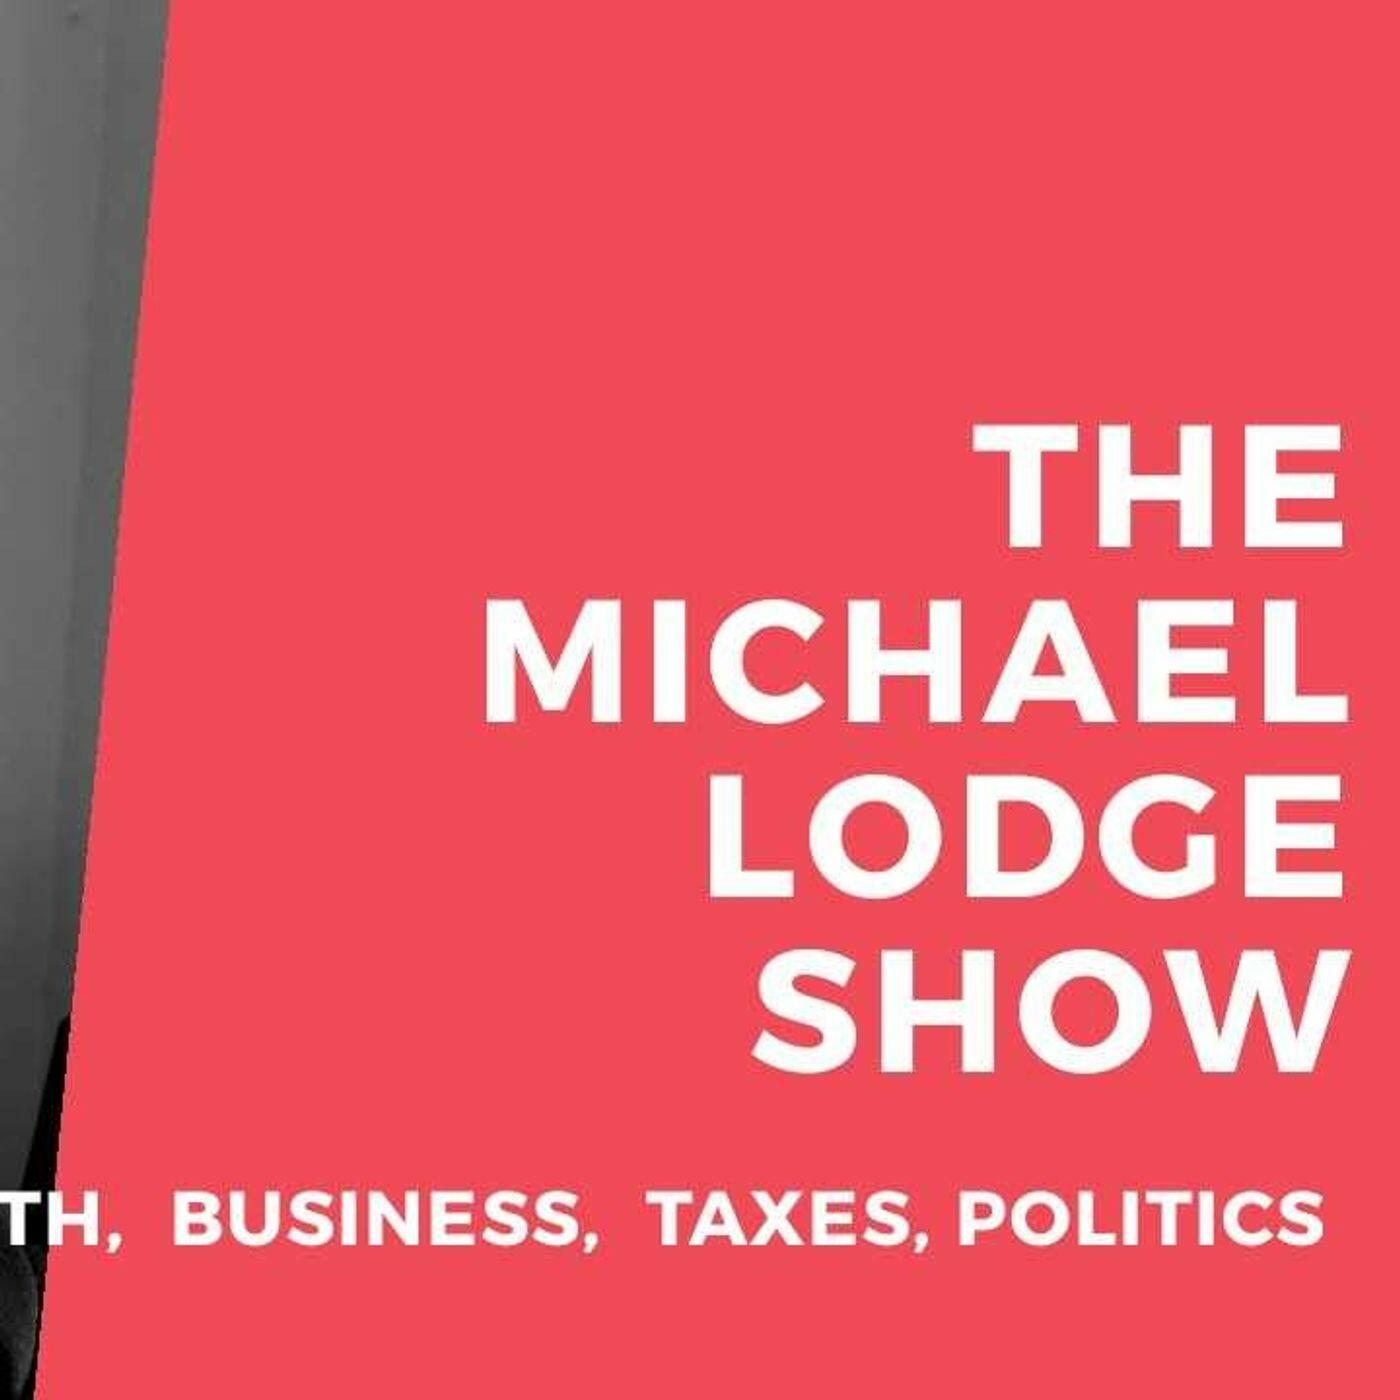 Listen to Episode 572 - Lesson Five - Well Rounded Planning   World of Business and Taxes   Podcasts